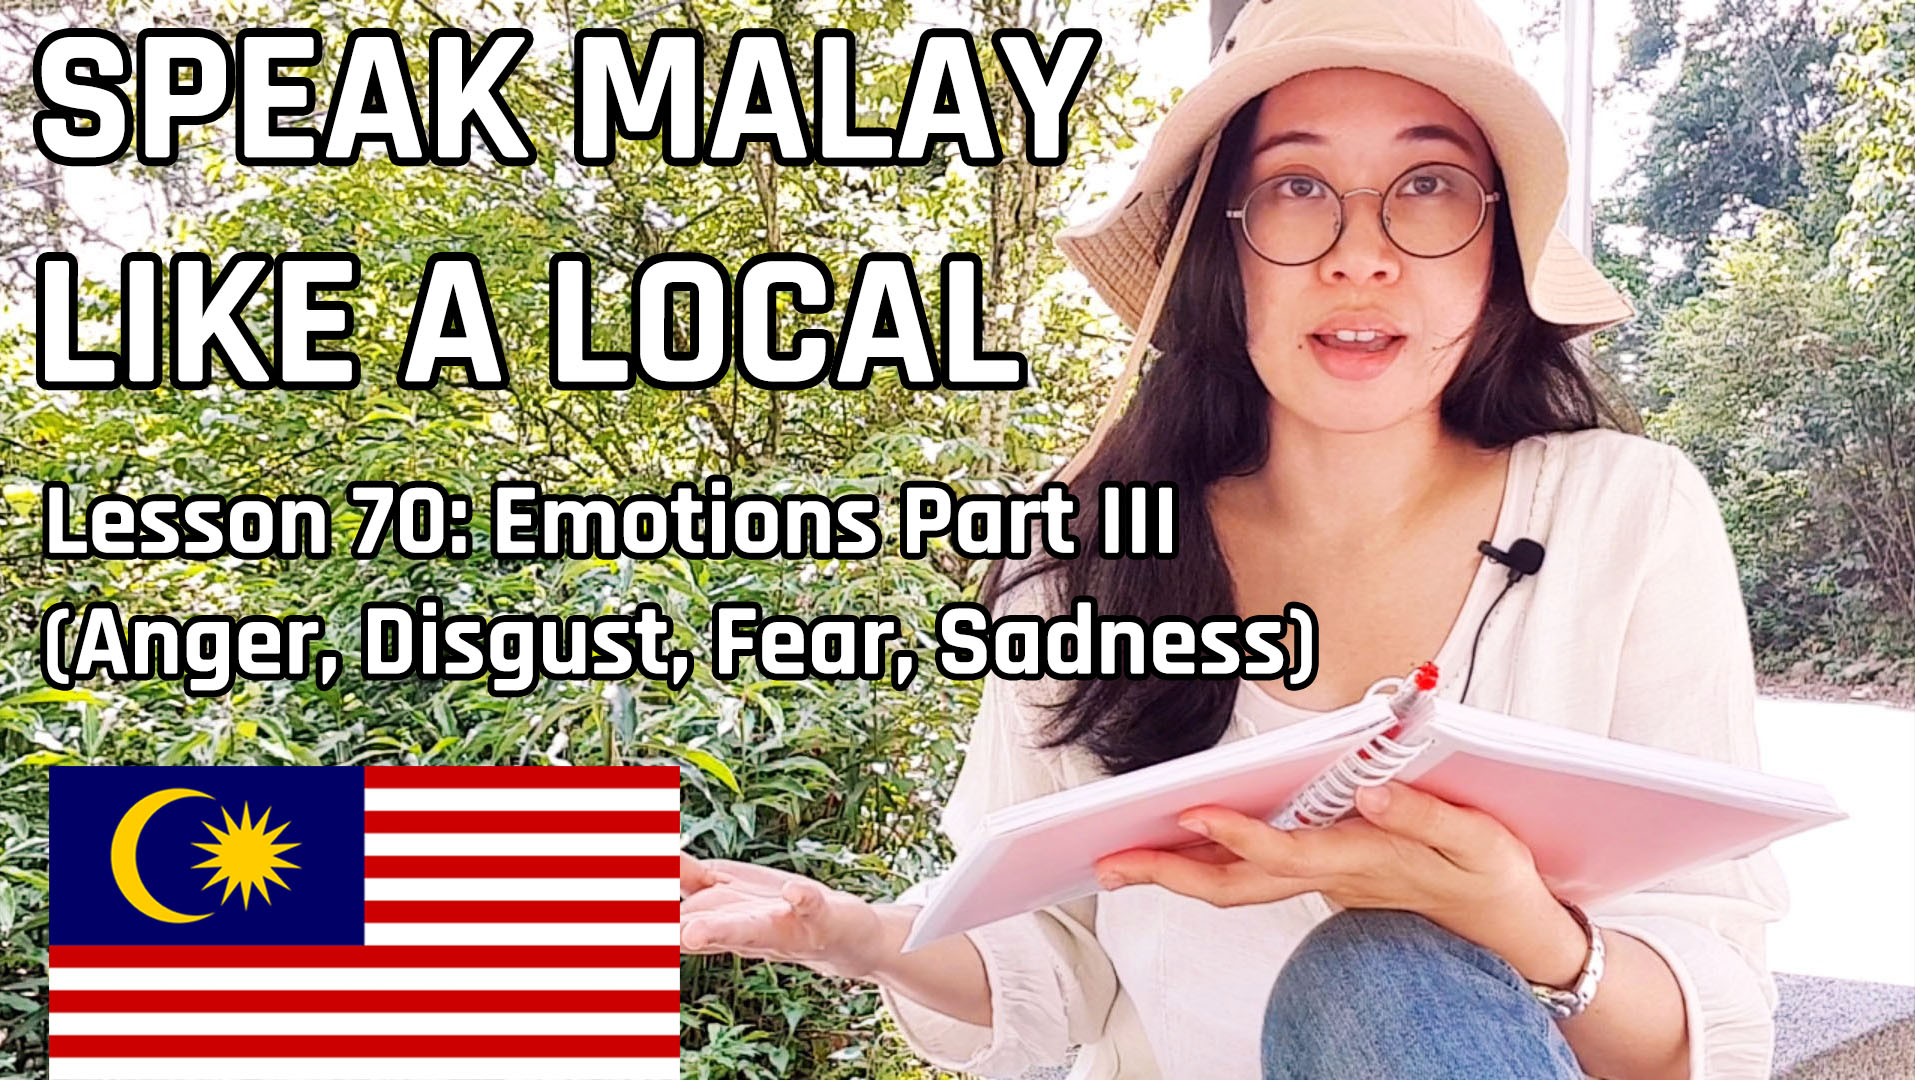 Speak Malay Like a Local – Lesson 70 : Emotions Part III (Anger, Disgust, Fear & Sadness)